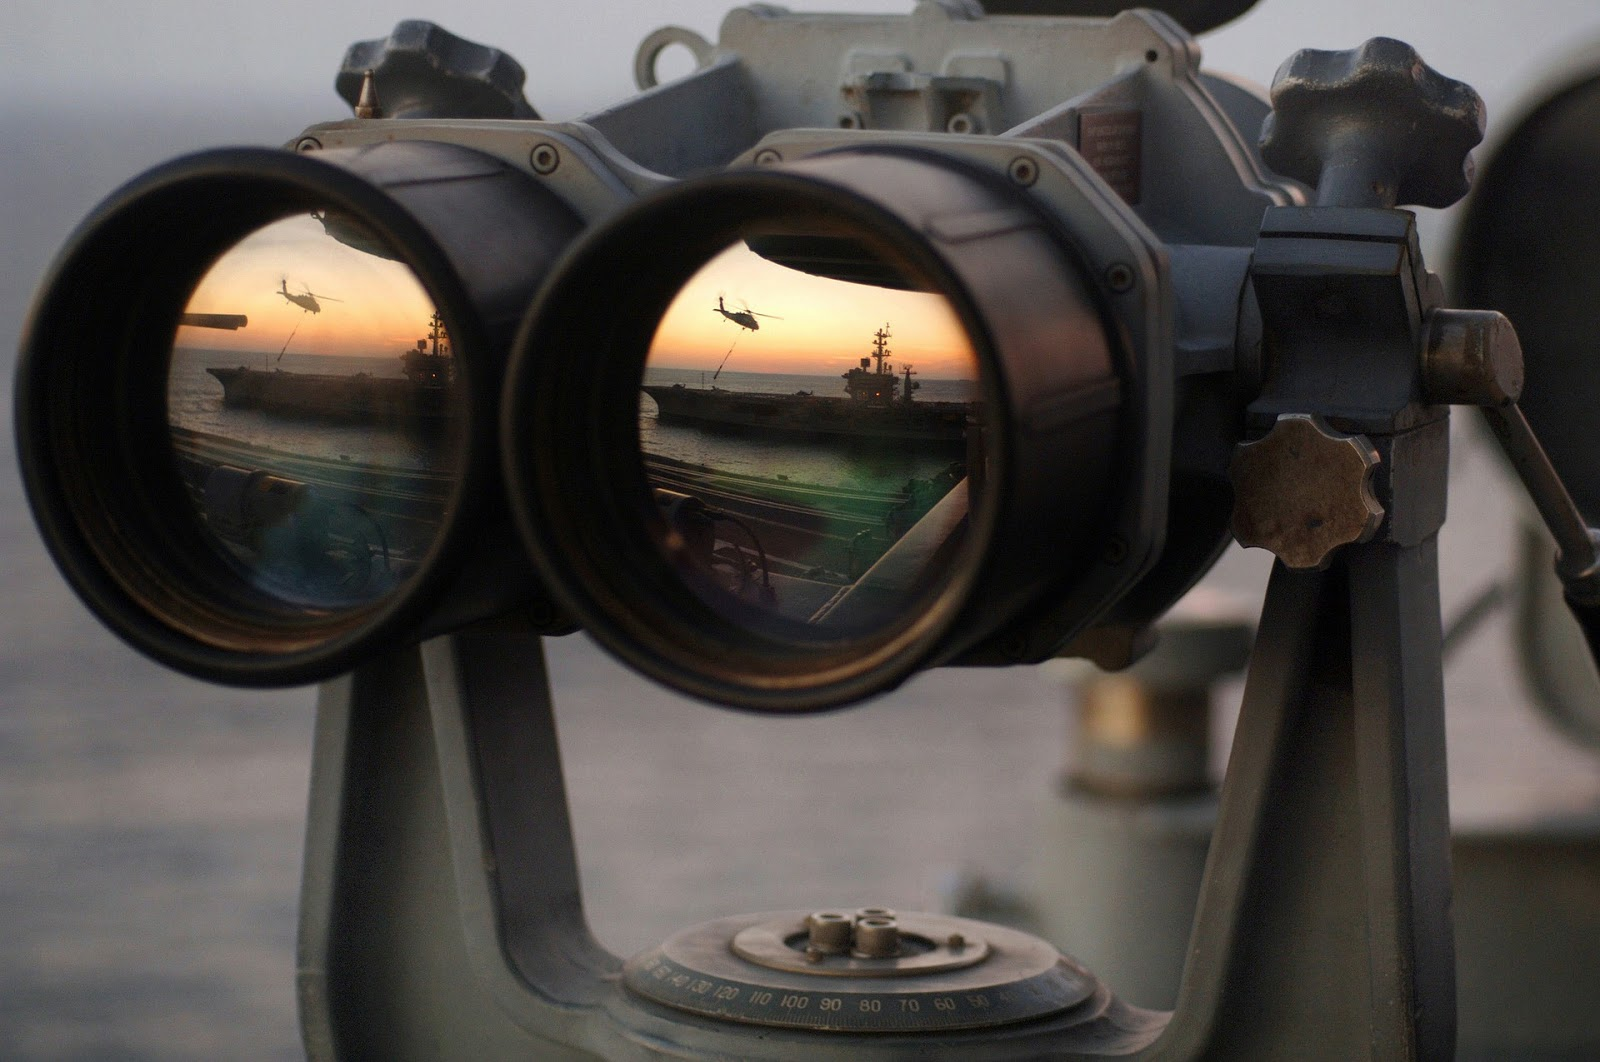 mounted miltary binoculars with navy ship reflected in lenses to illustrate war movie operation oblivion